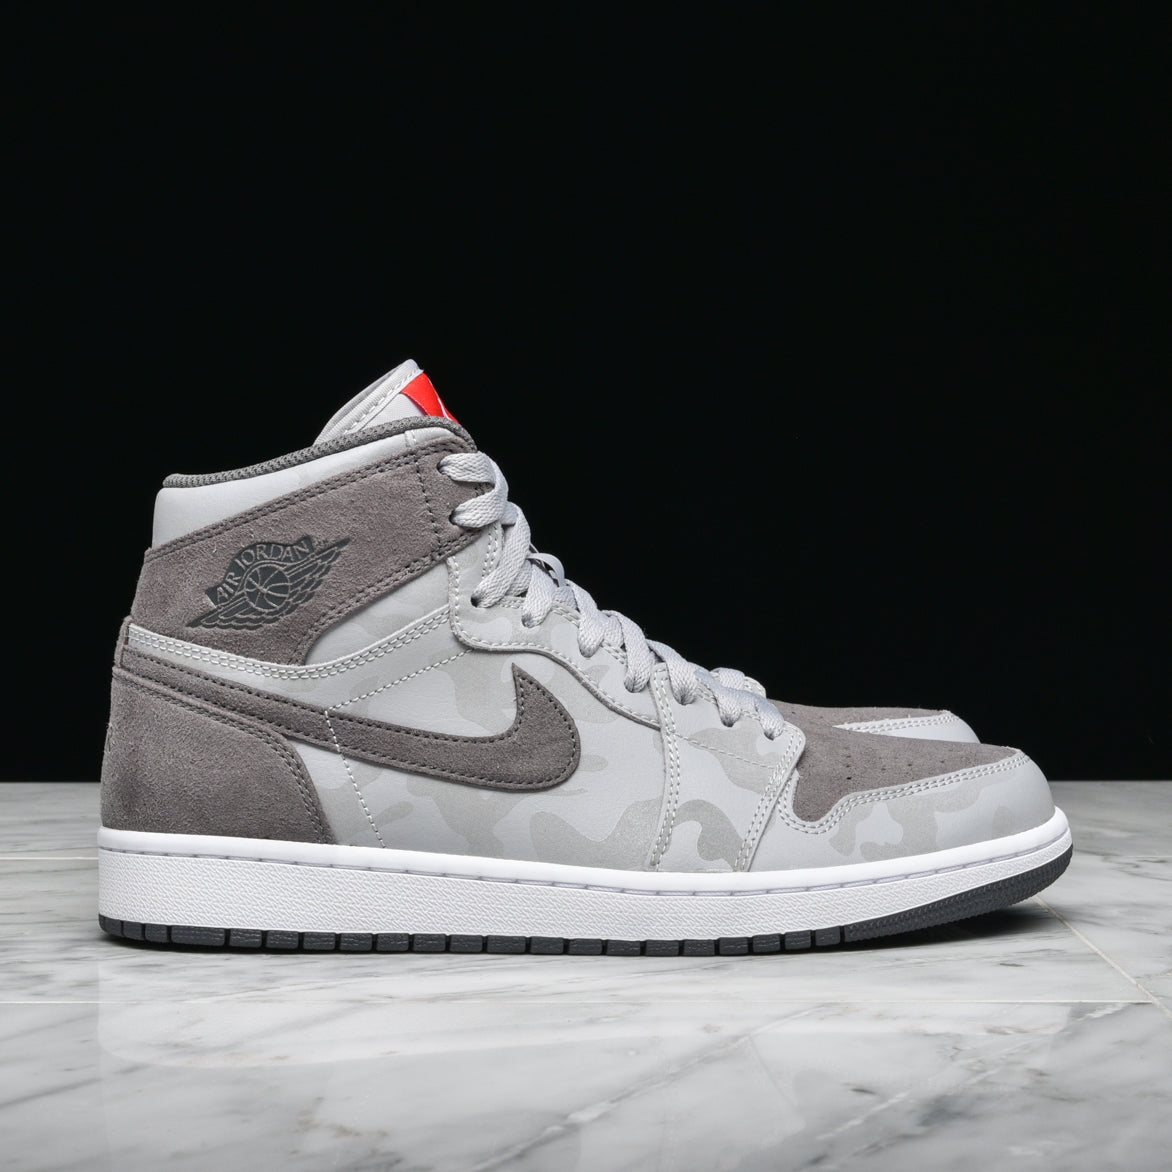 air jordan 1 retro high premium grey camo jacket